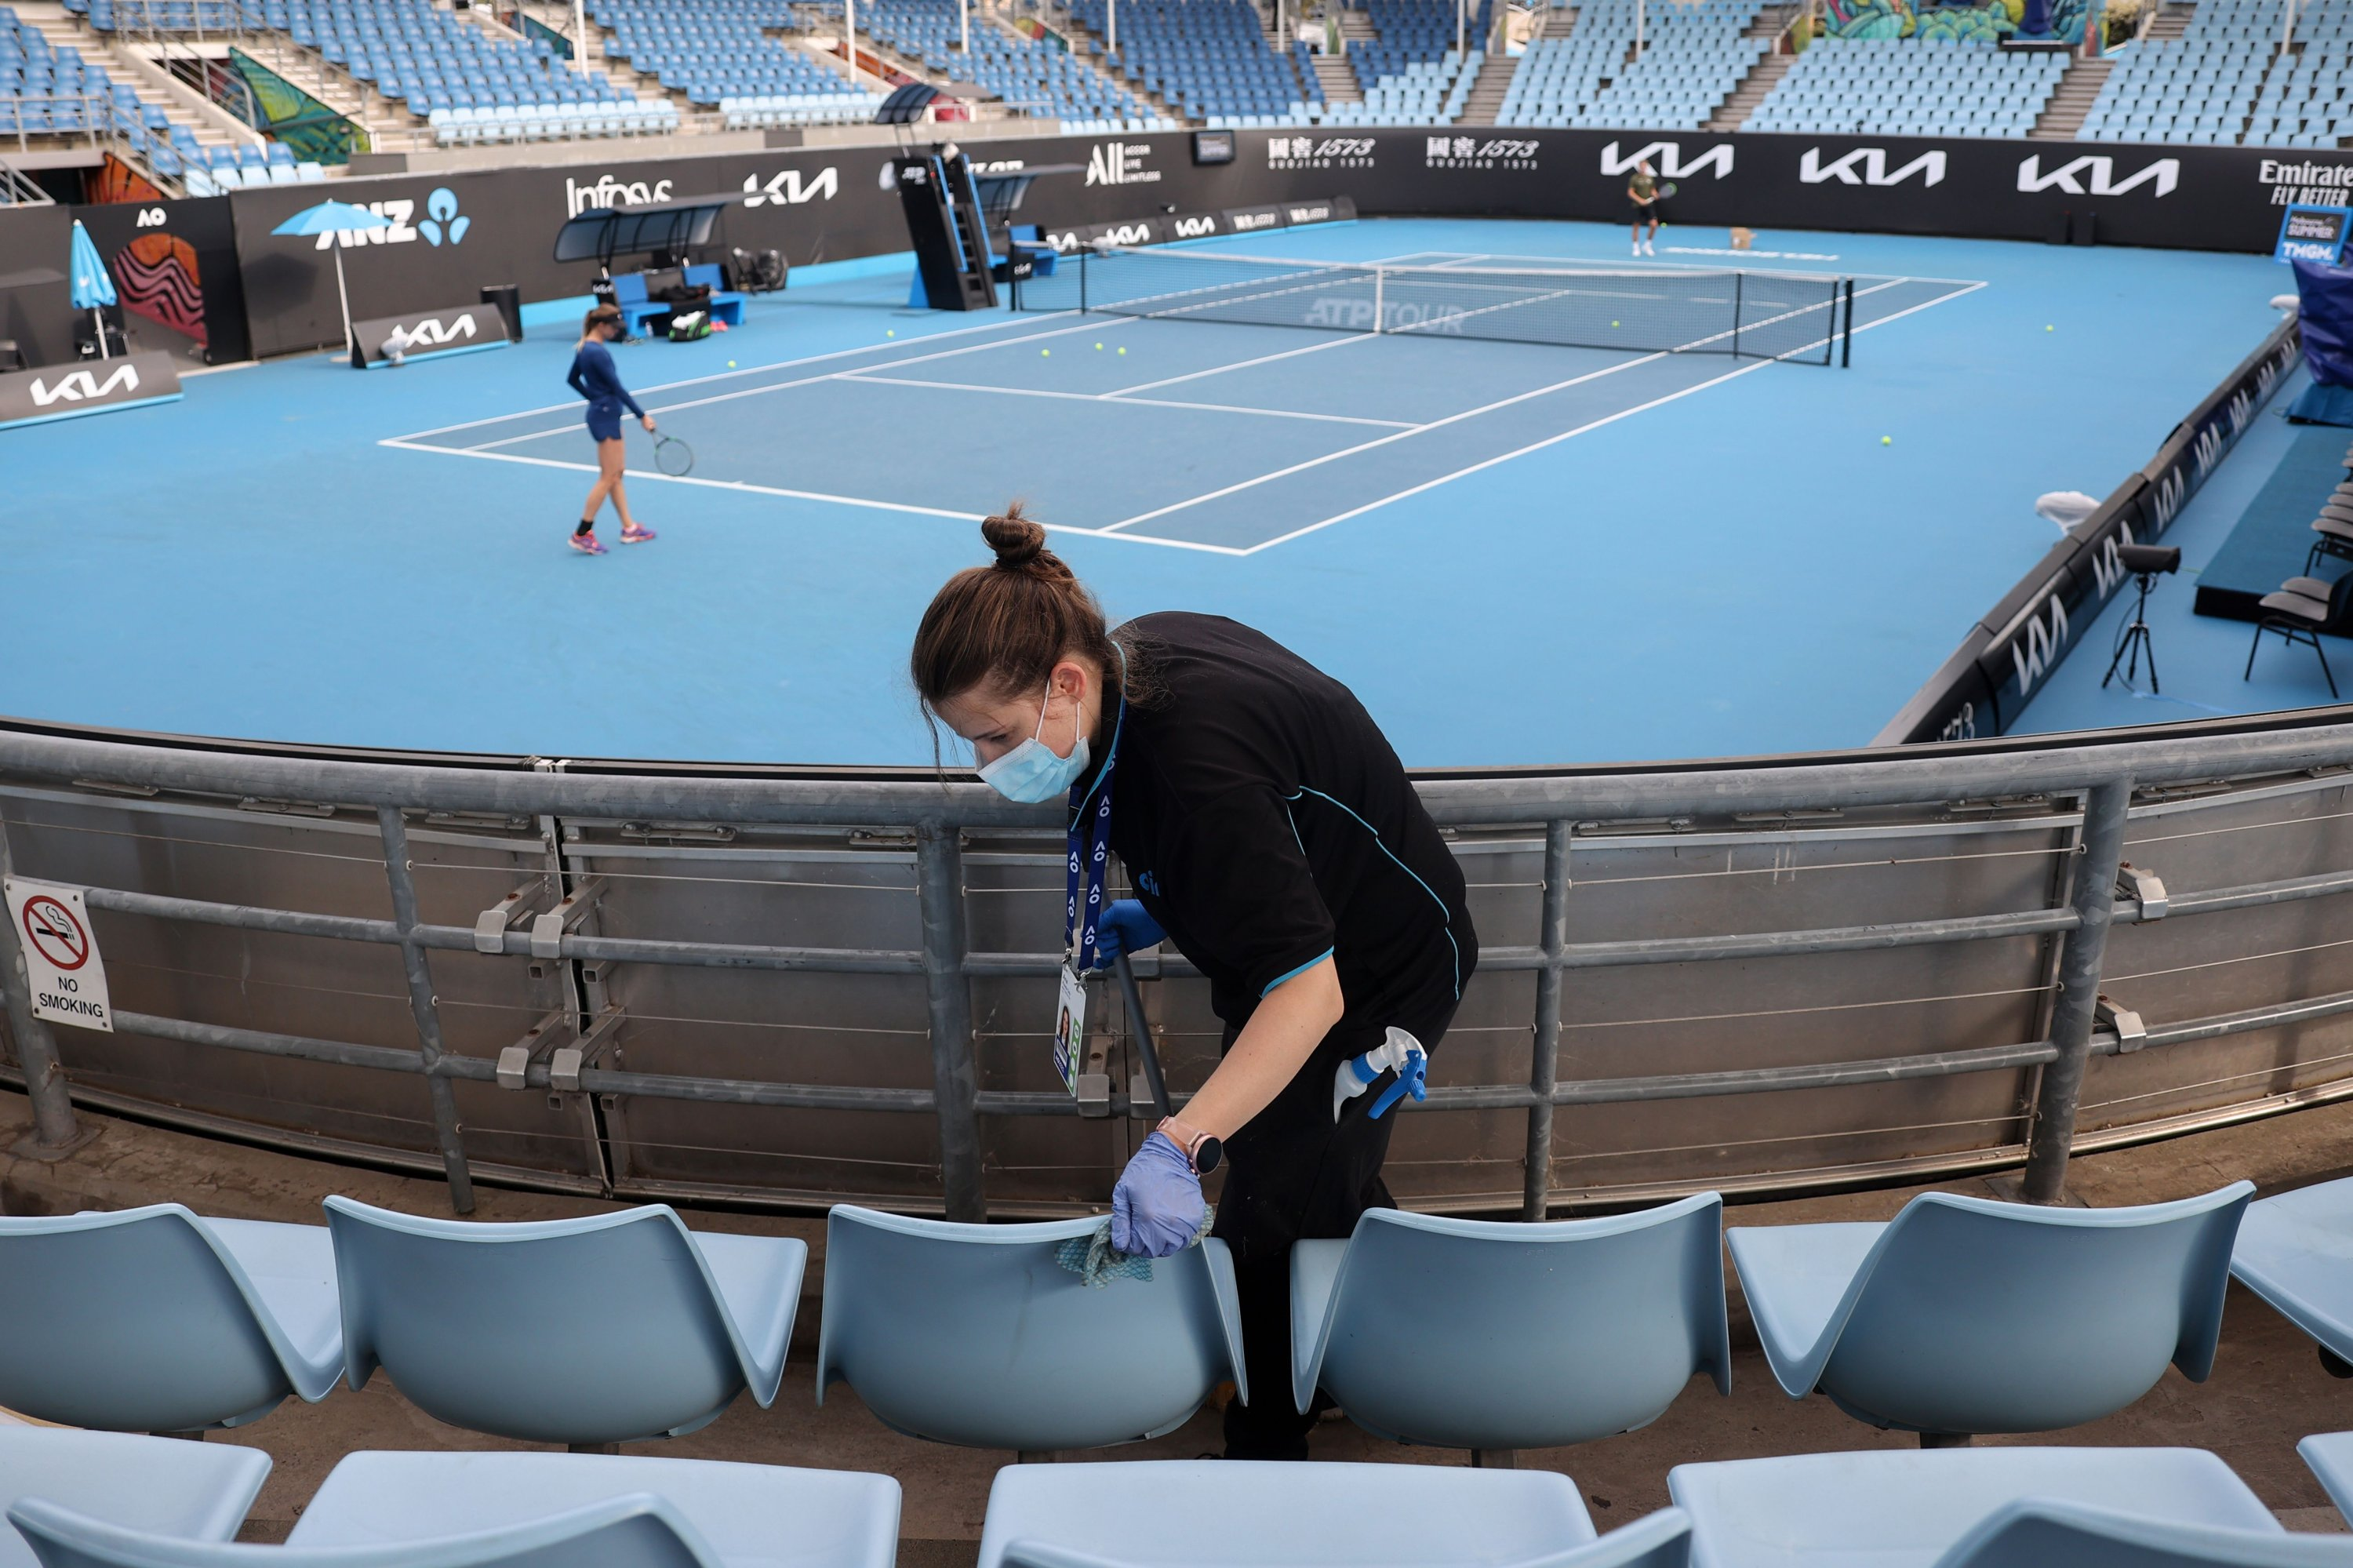 A worker cleans the seating areas on court 3 during a warmup session at Melbourne Park in Melbourne, Feb. 4, 2021. (AFP Photo)